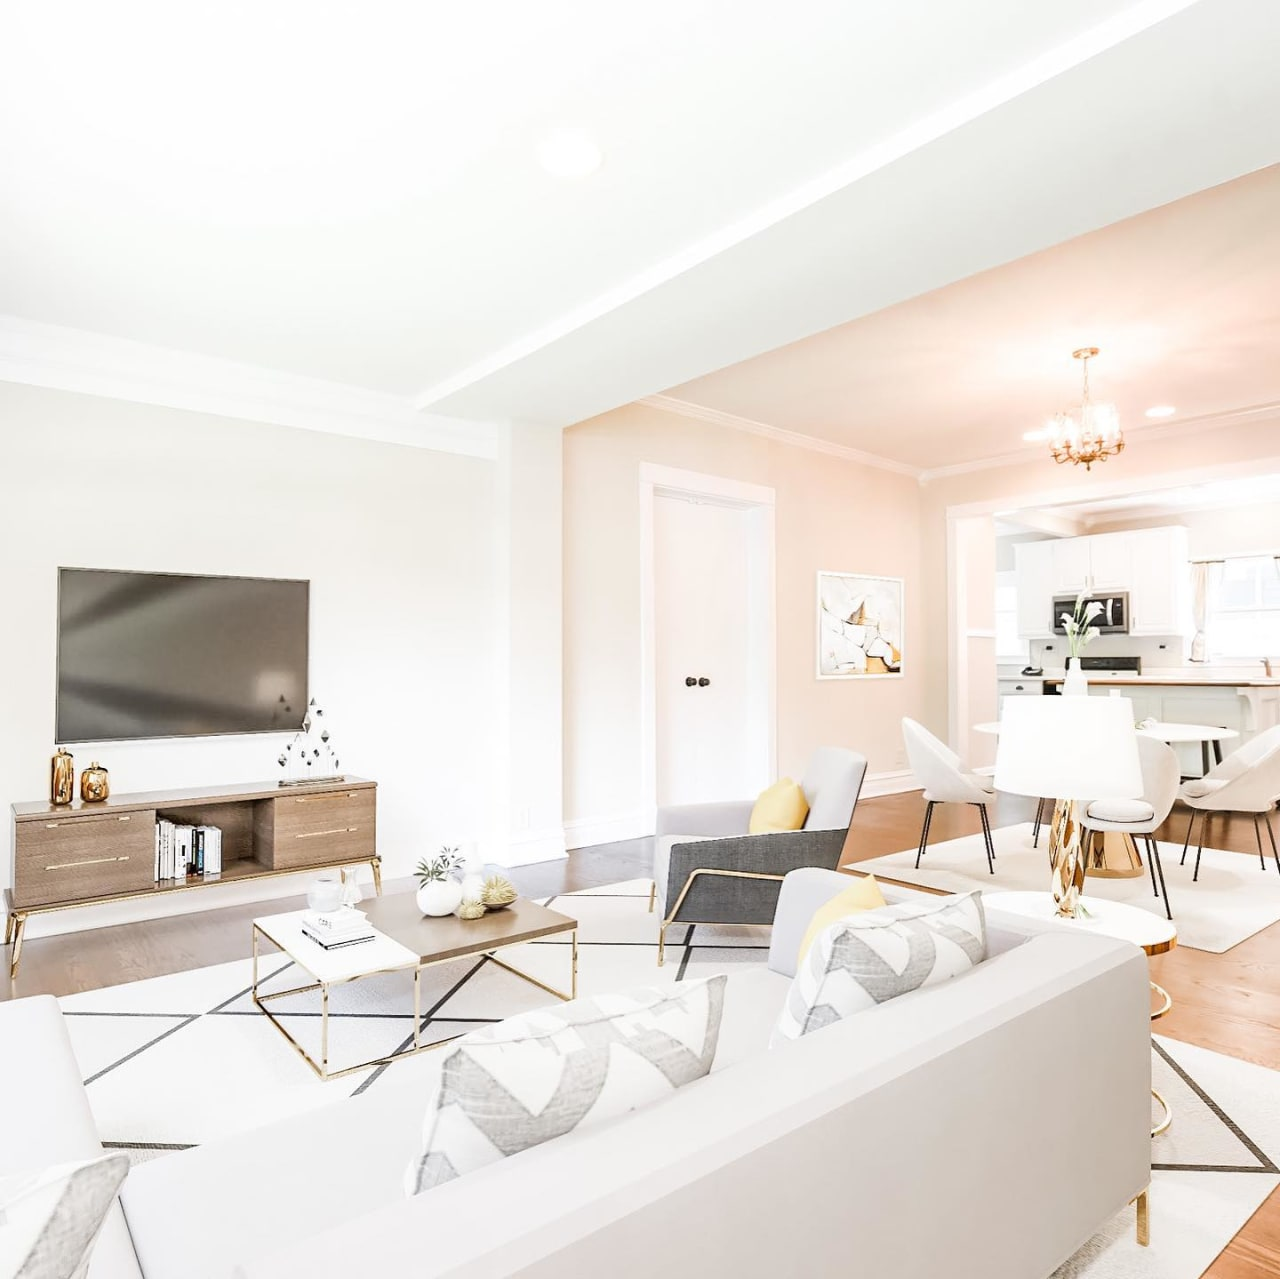 Virtual Staging For Your Home: When and Why It Works